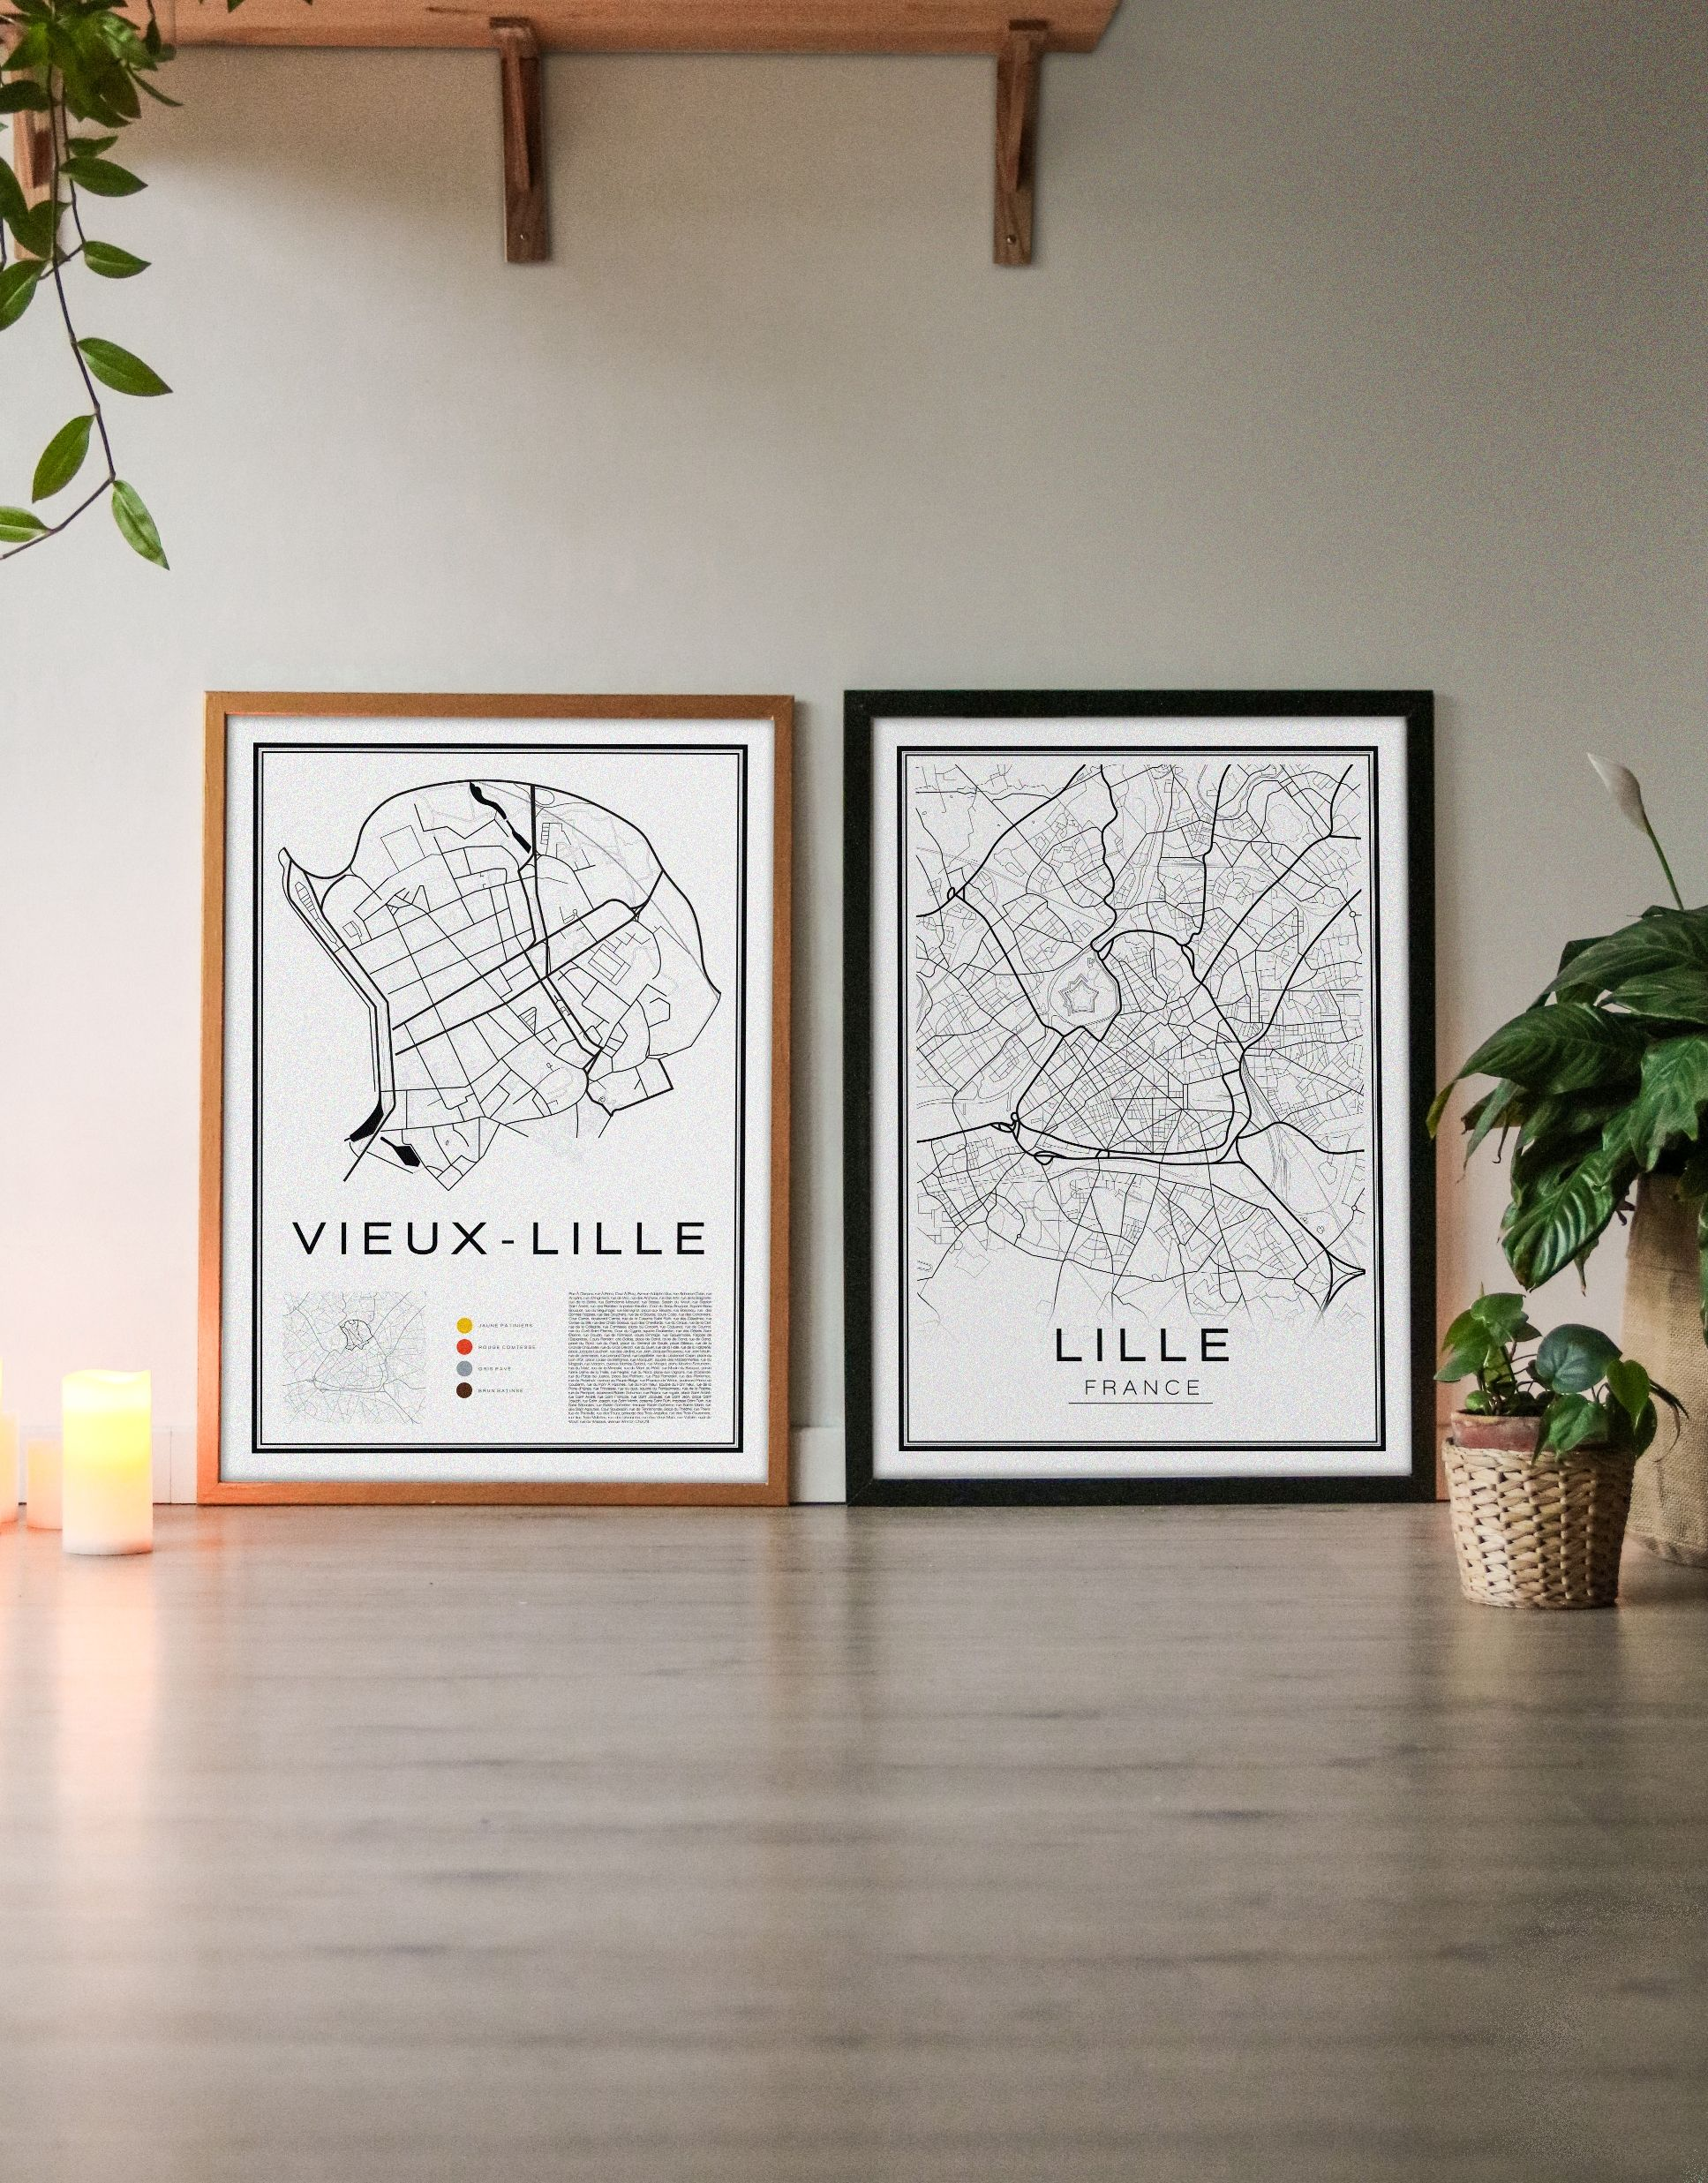 Lot De 2 Affiches Grand Format Lille Vieux Lille Ou Vulgarites In 2020 Gallery Wall Lille Prints